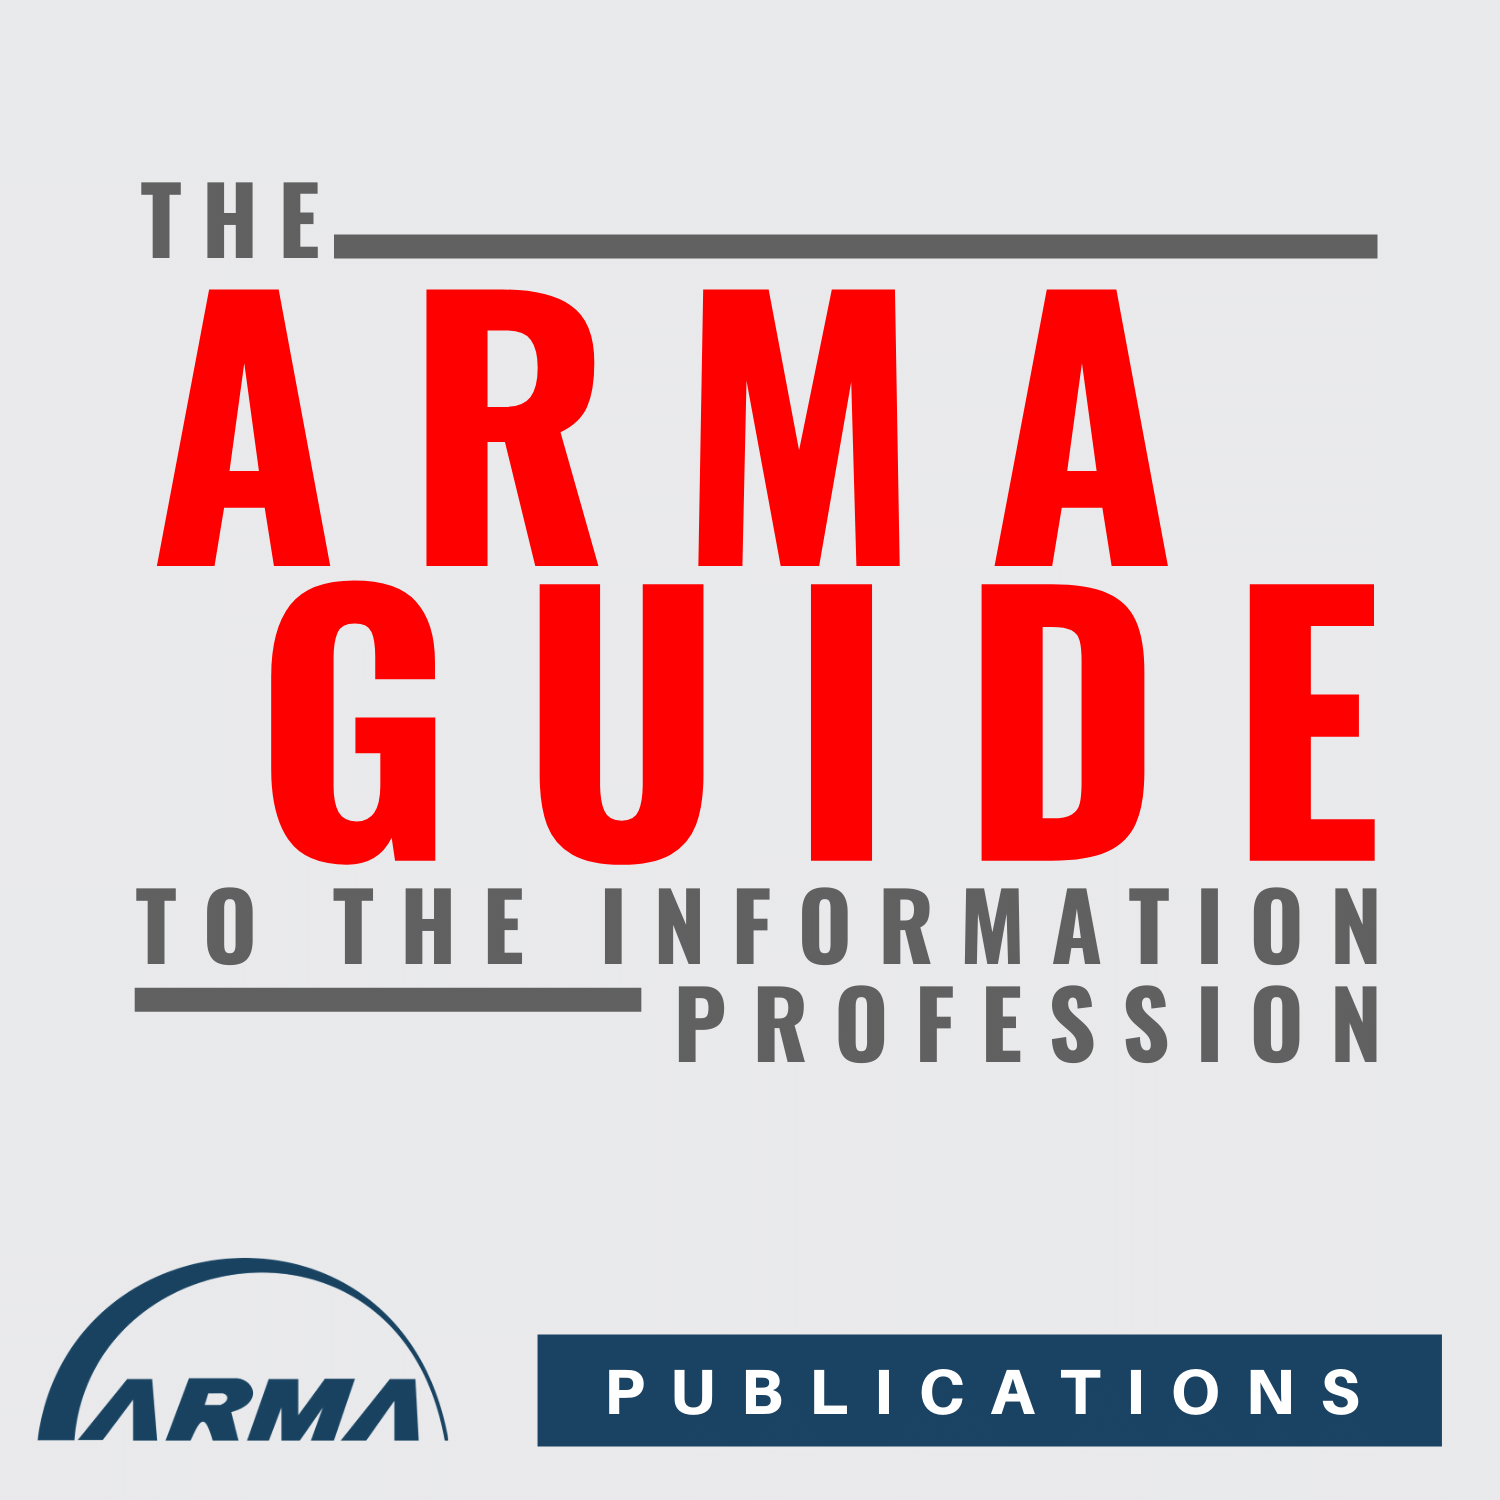 The ARMA Guide to the Information Profession